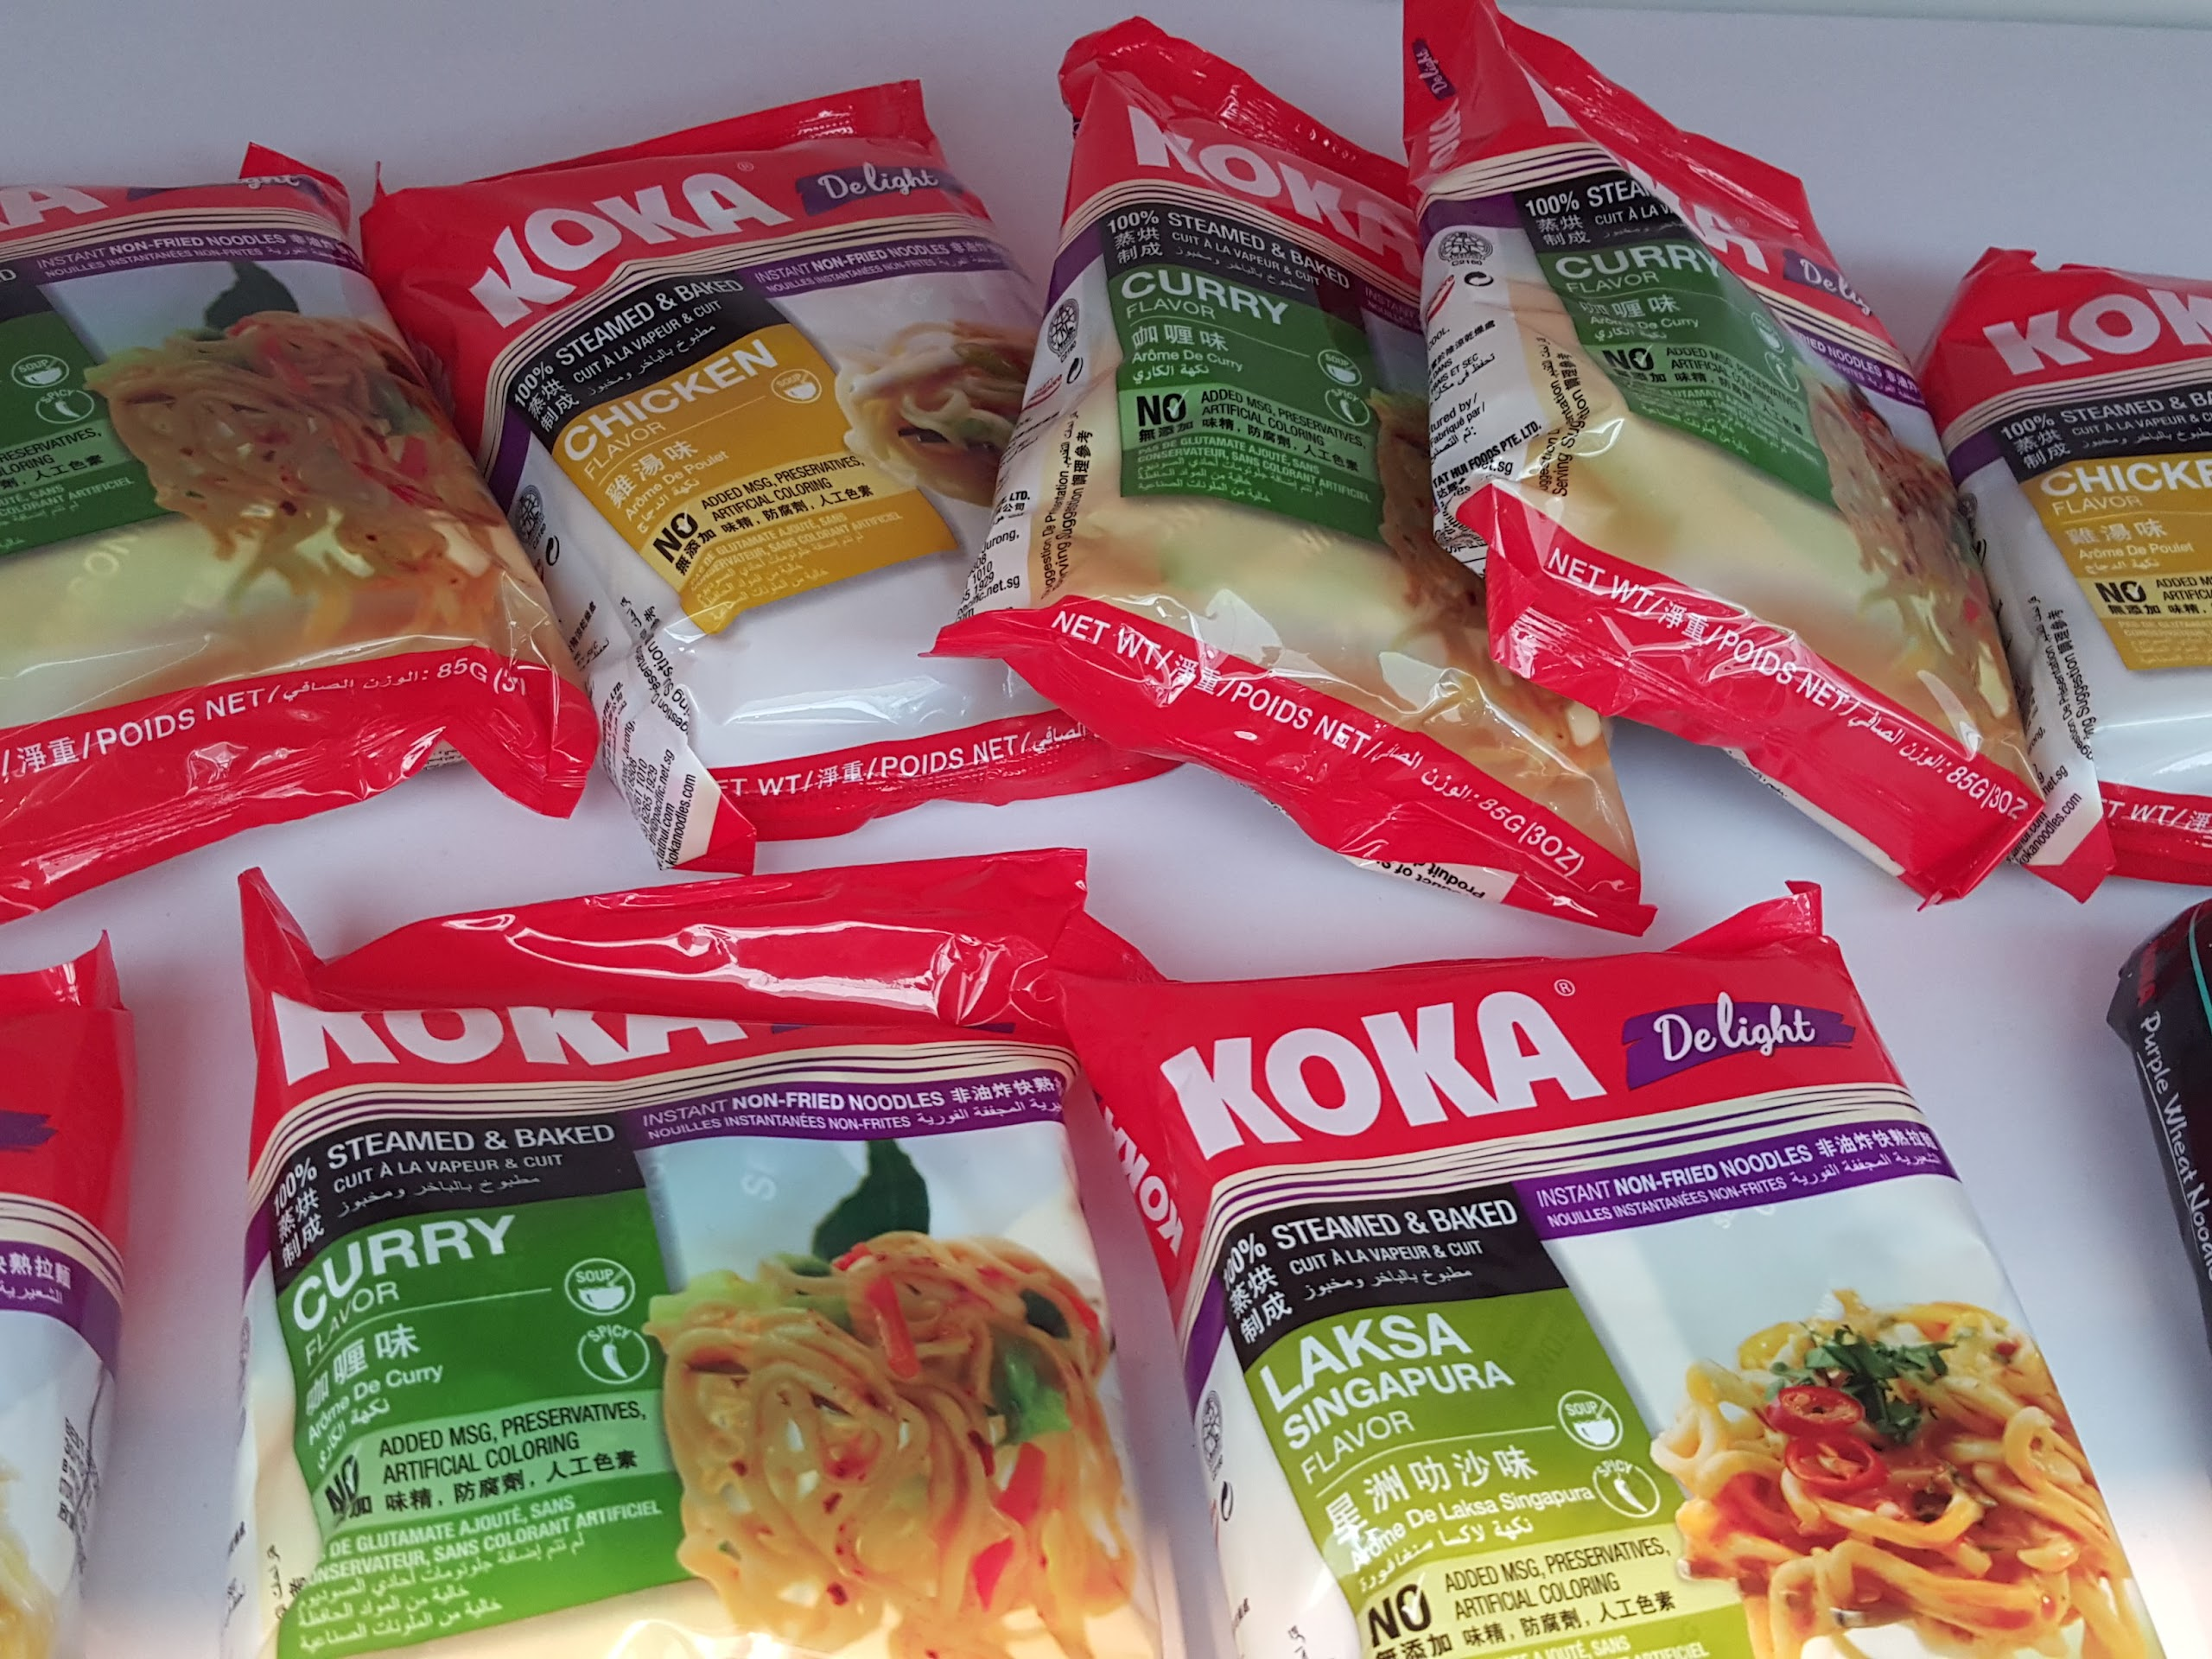 Suroor asia fha2016s halal supermarket offers quick sourcing for koka noodles from tat hui foods is positioned as the healthier noodle choice buycottarizona